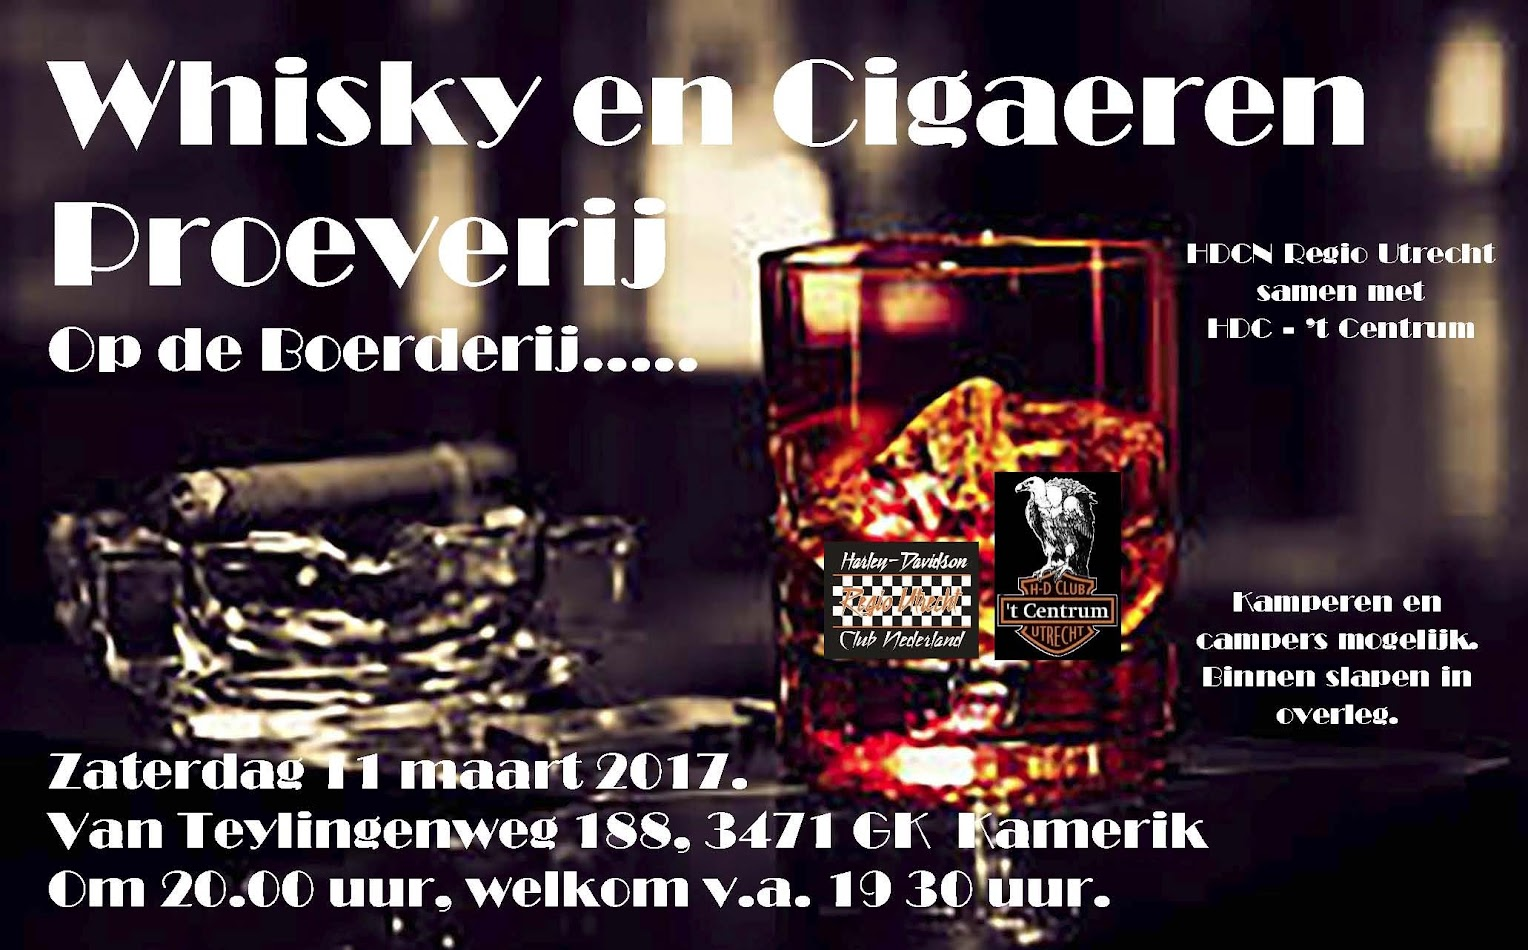 Cigaeren en Whiskey